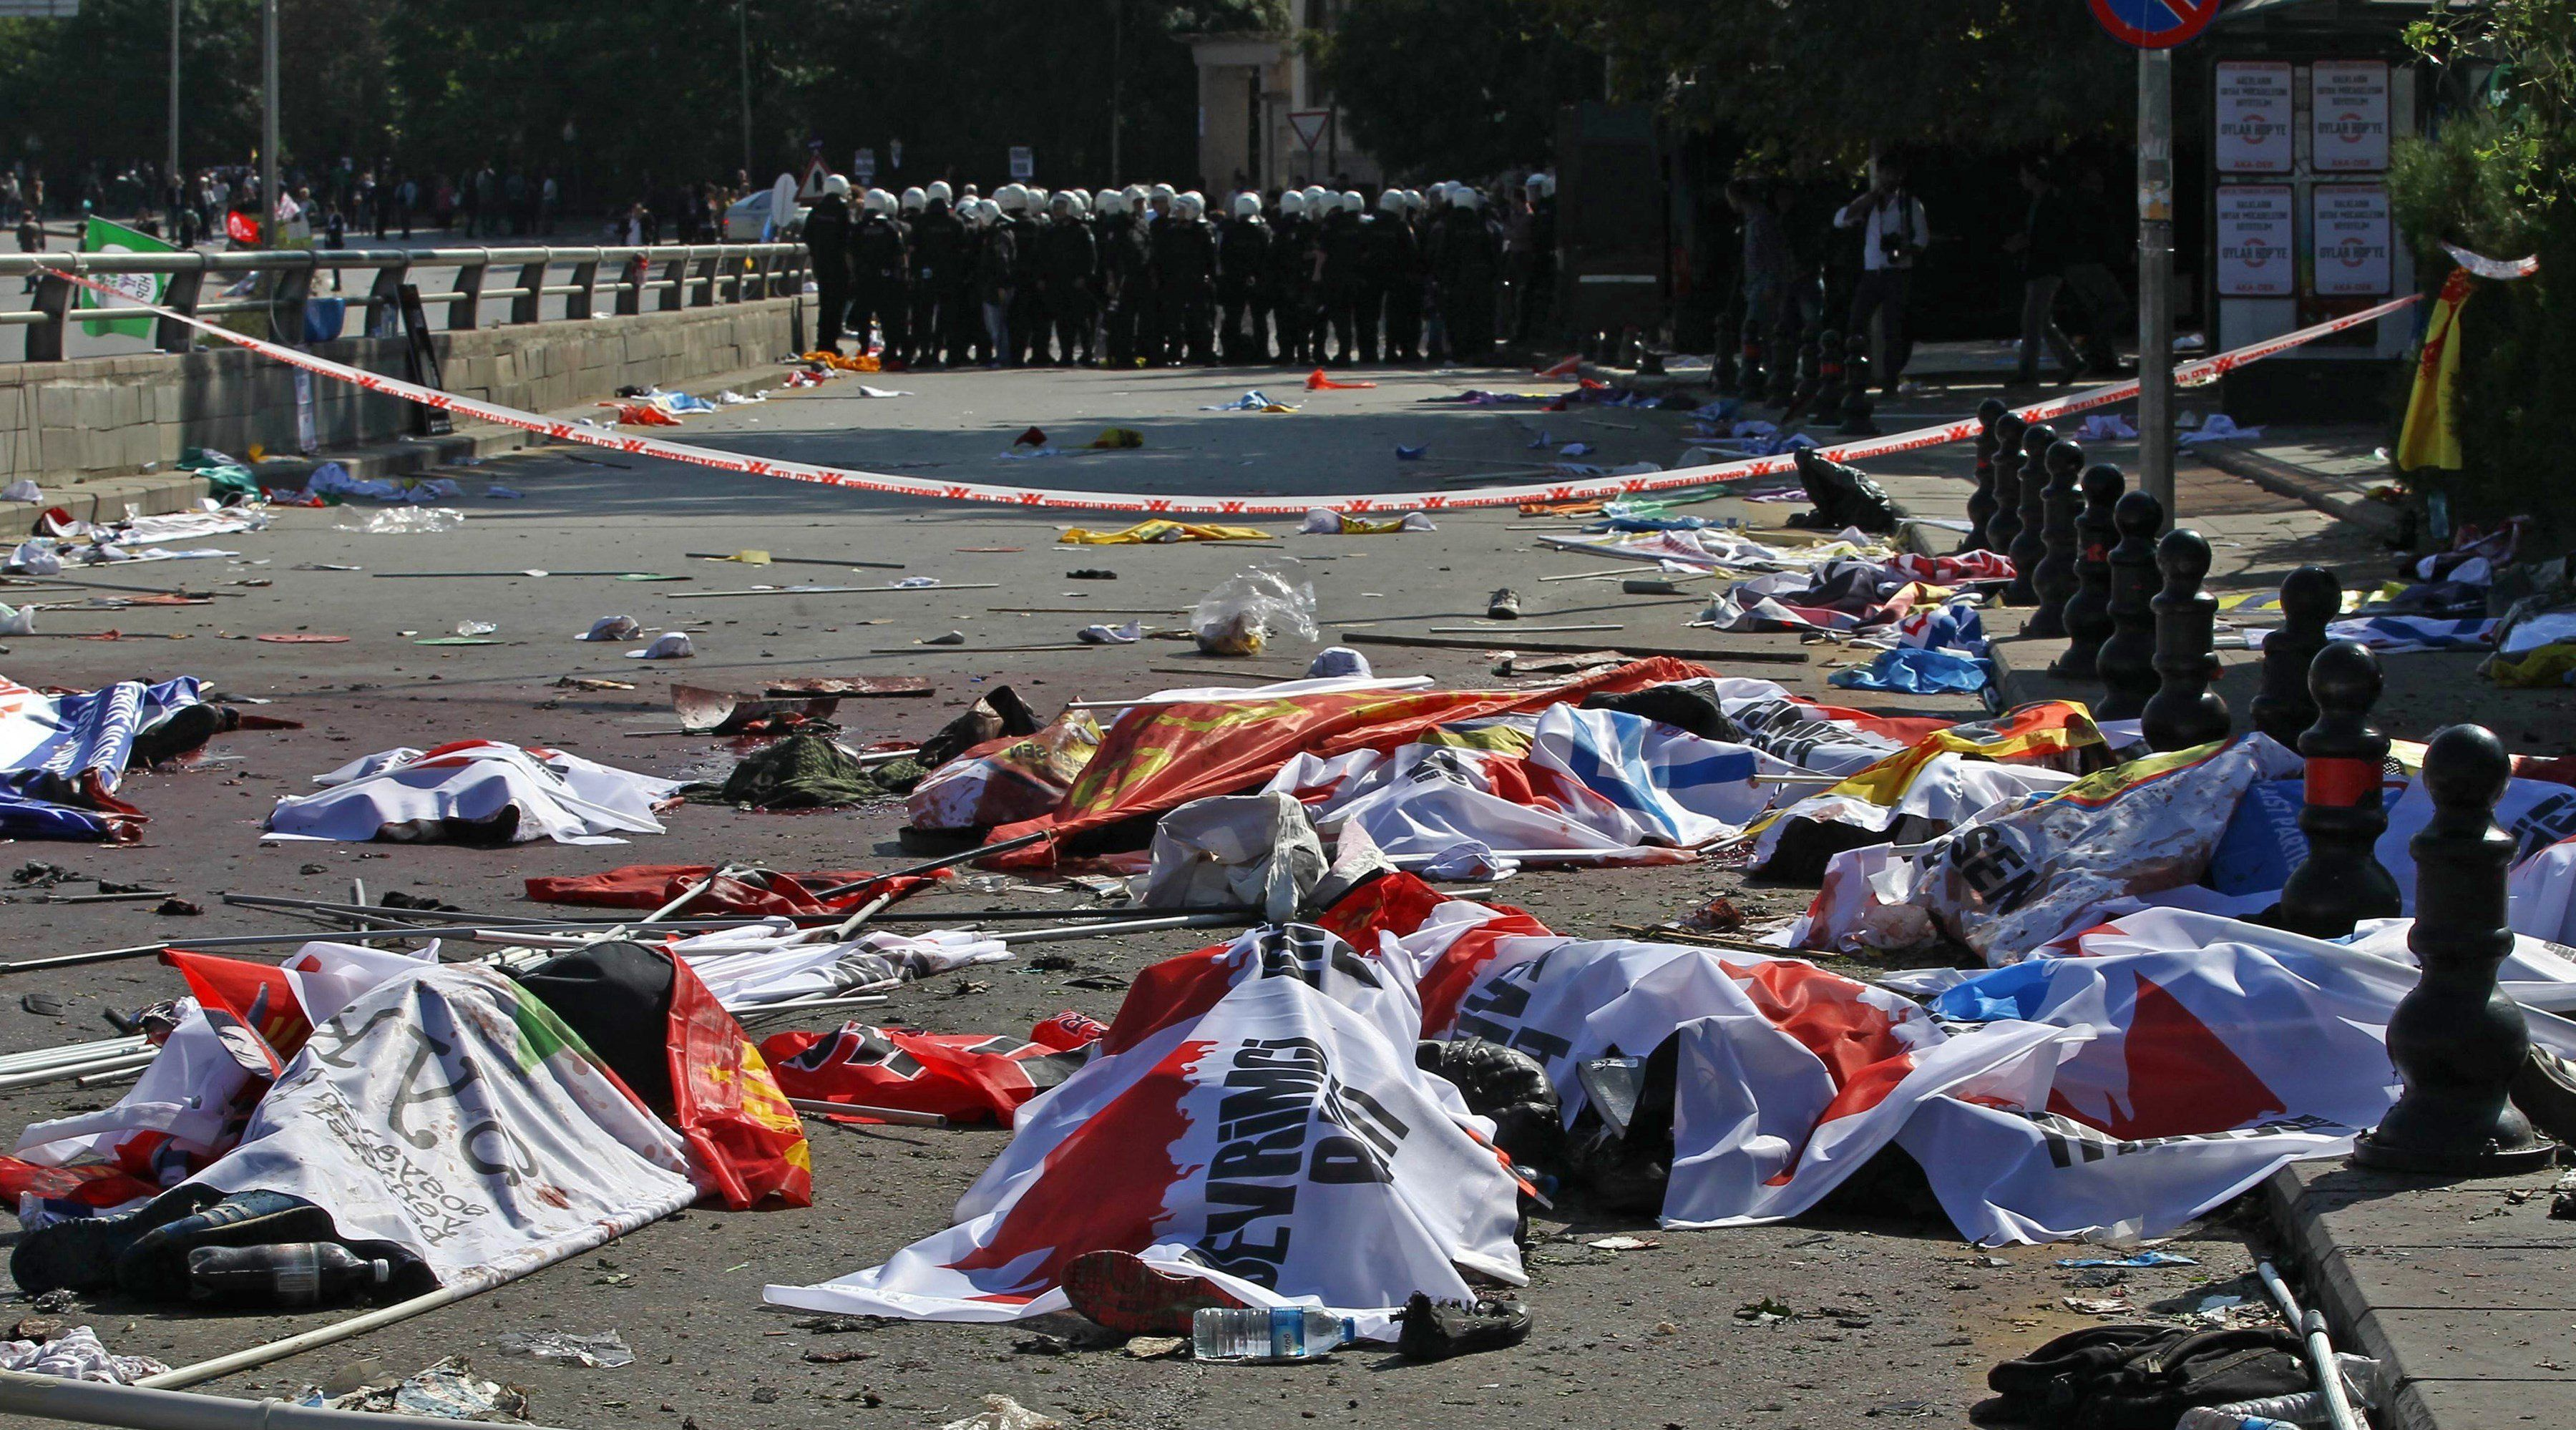 Turkish riot police forces (Rear) secure the site of twin explosions as victims' bodies on the street are covered with banners and flags, near the main train station in Turkey's capital Ankara, on October 10, 2015. At least 86 people were killed on October 10 in the Turkish capital Ankara when bombs set off by two suspected suicide attackers ripped through leftist and pro-Kurdish activists gathering for an anti-government peace rally, the deadliest attack in the history of modern Turkey. AFP PHOTO / ADEM ALTAN        (Photo credit should read ADEM ALTAN/AFP/Getty Images)